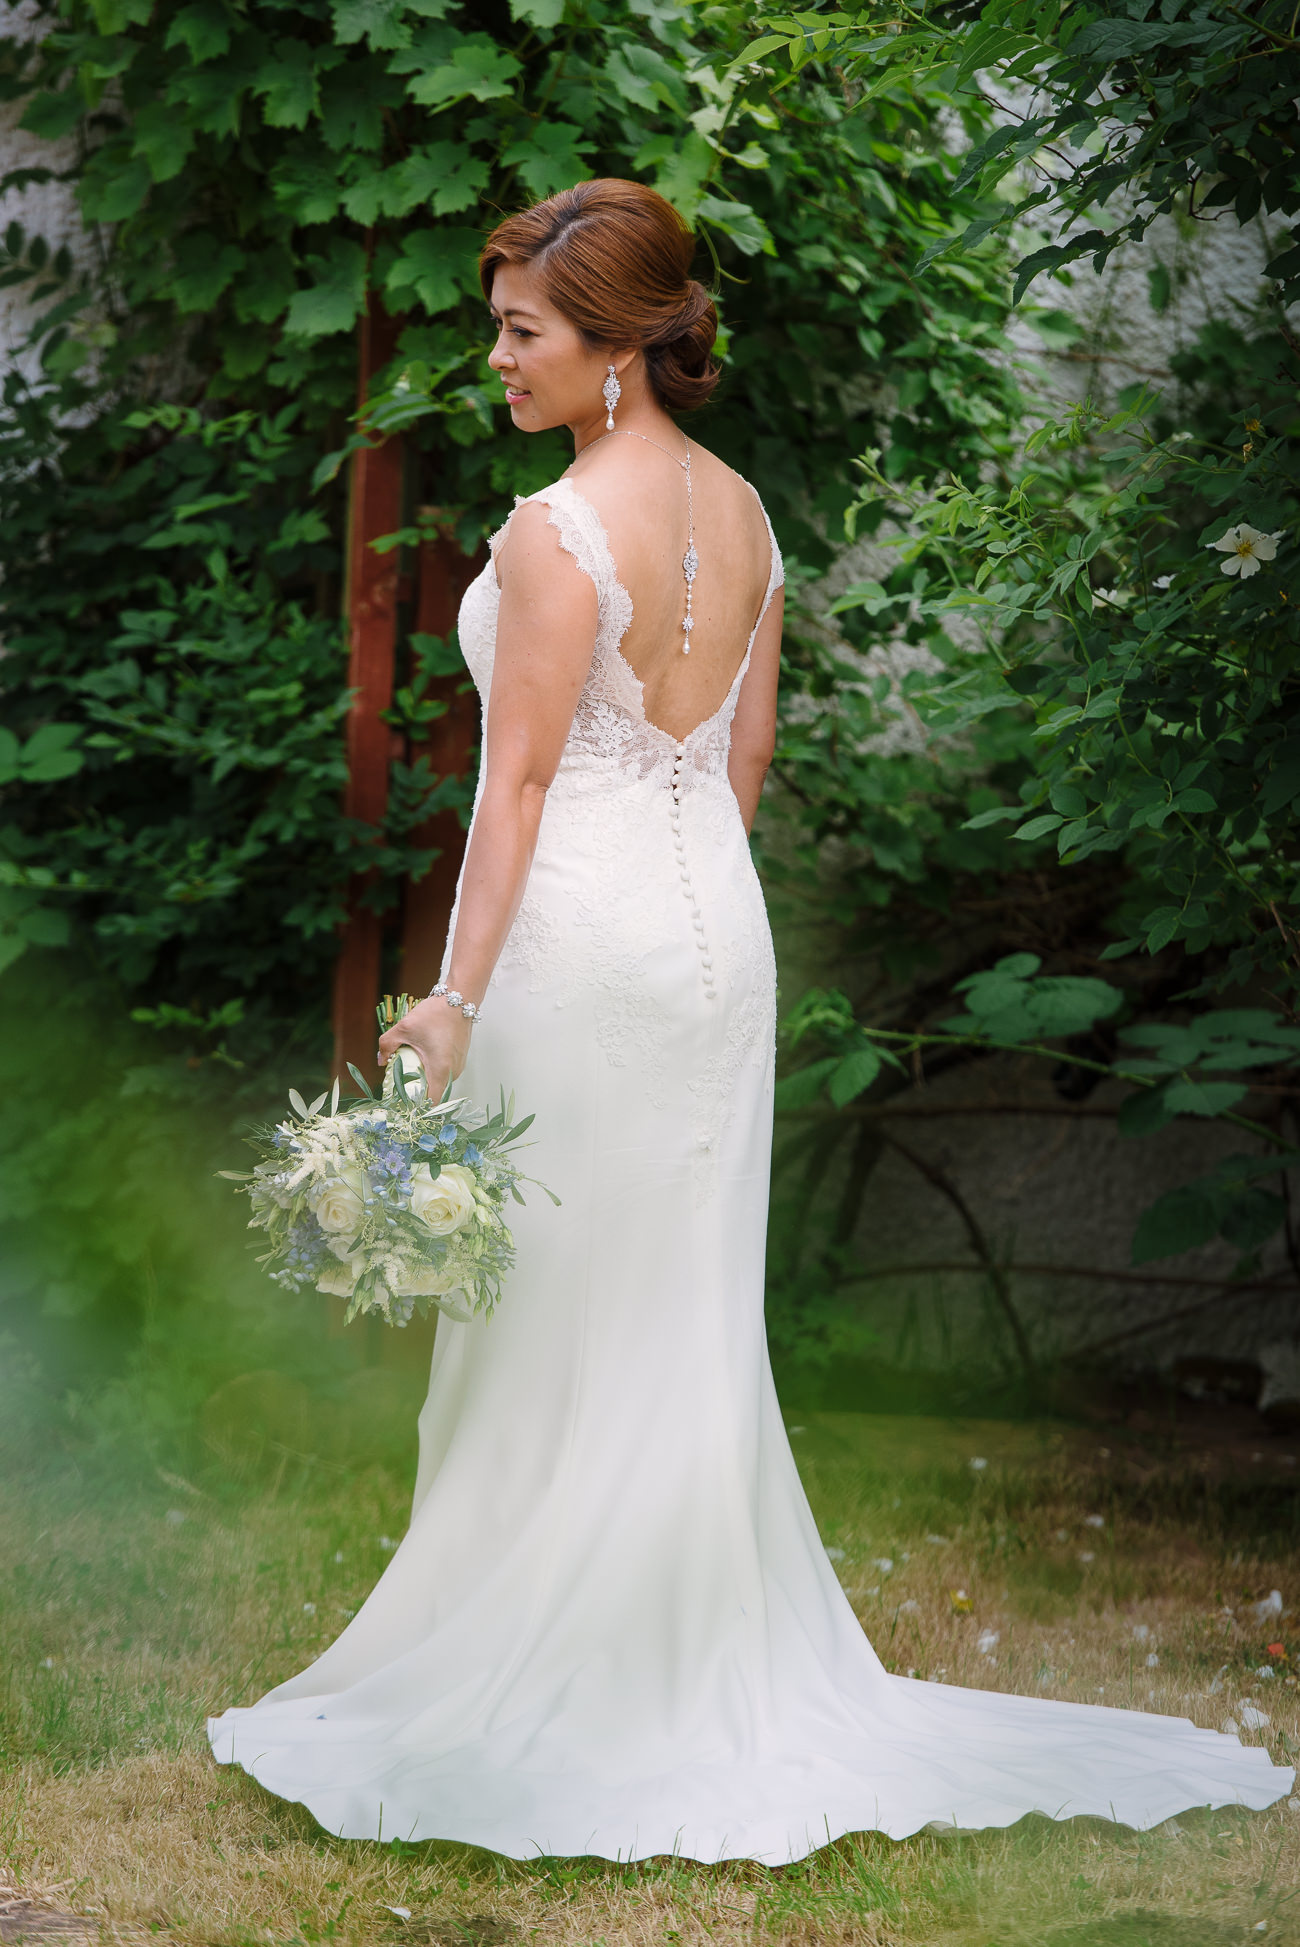 Bridal Portrait in her home garden in London